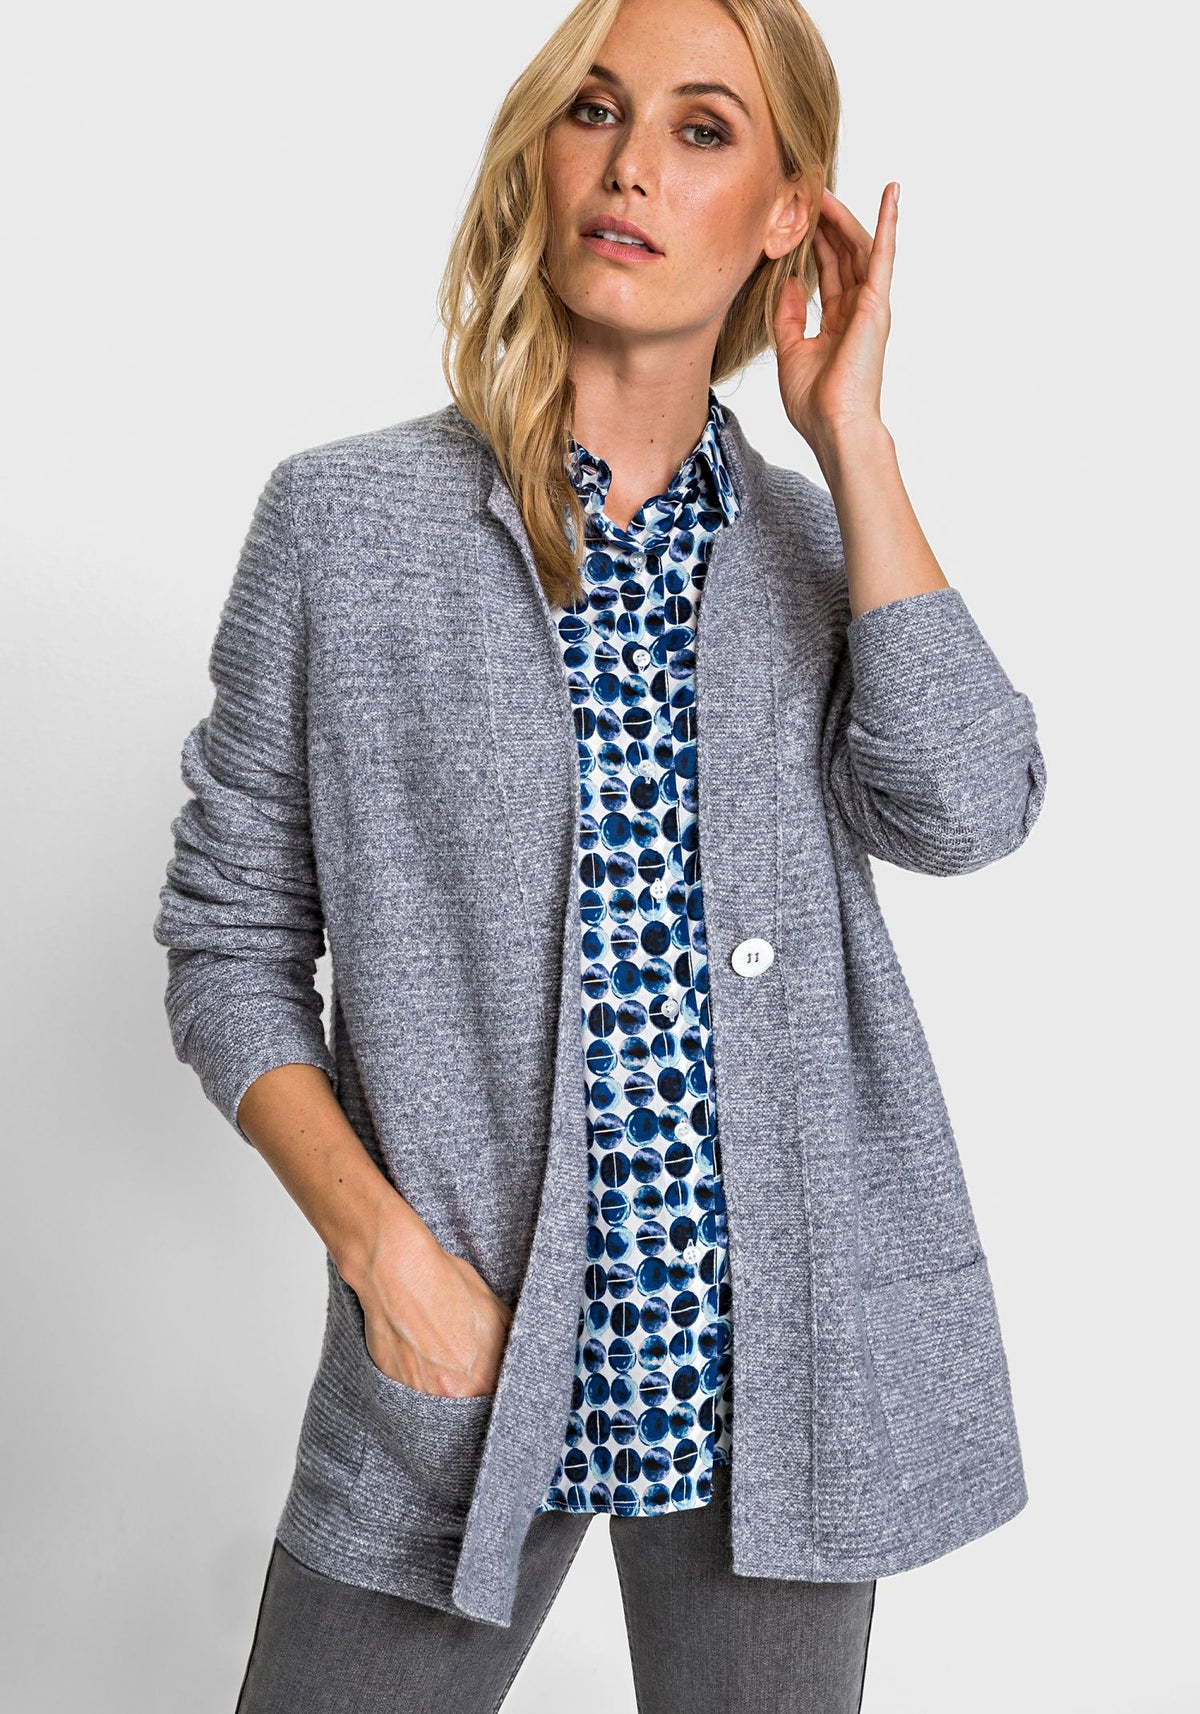 Long Sleeve 1-Button Inverted Lapel Collar Cardigan (Henny Fit)